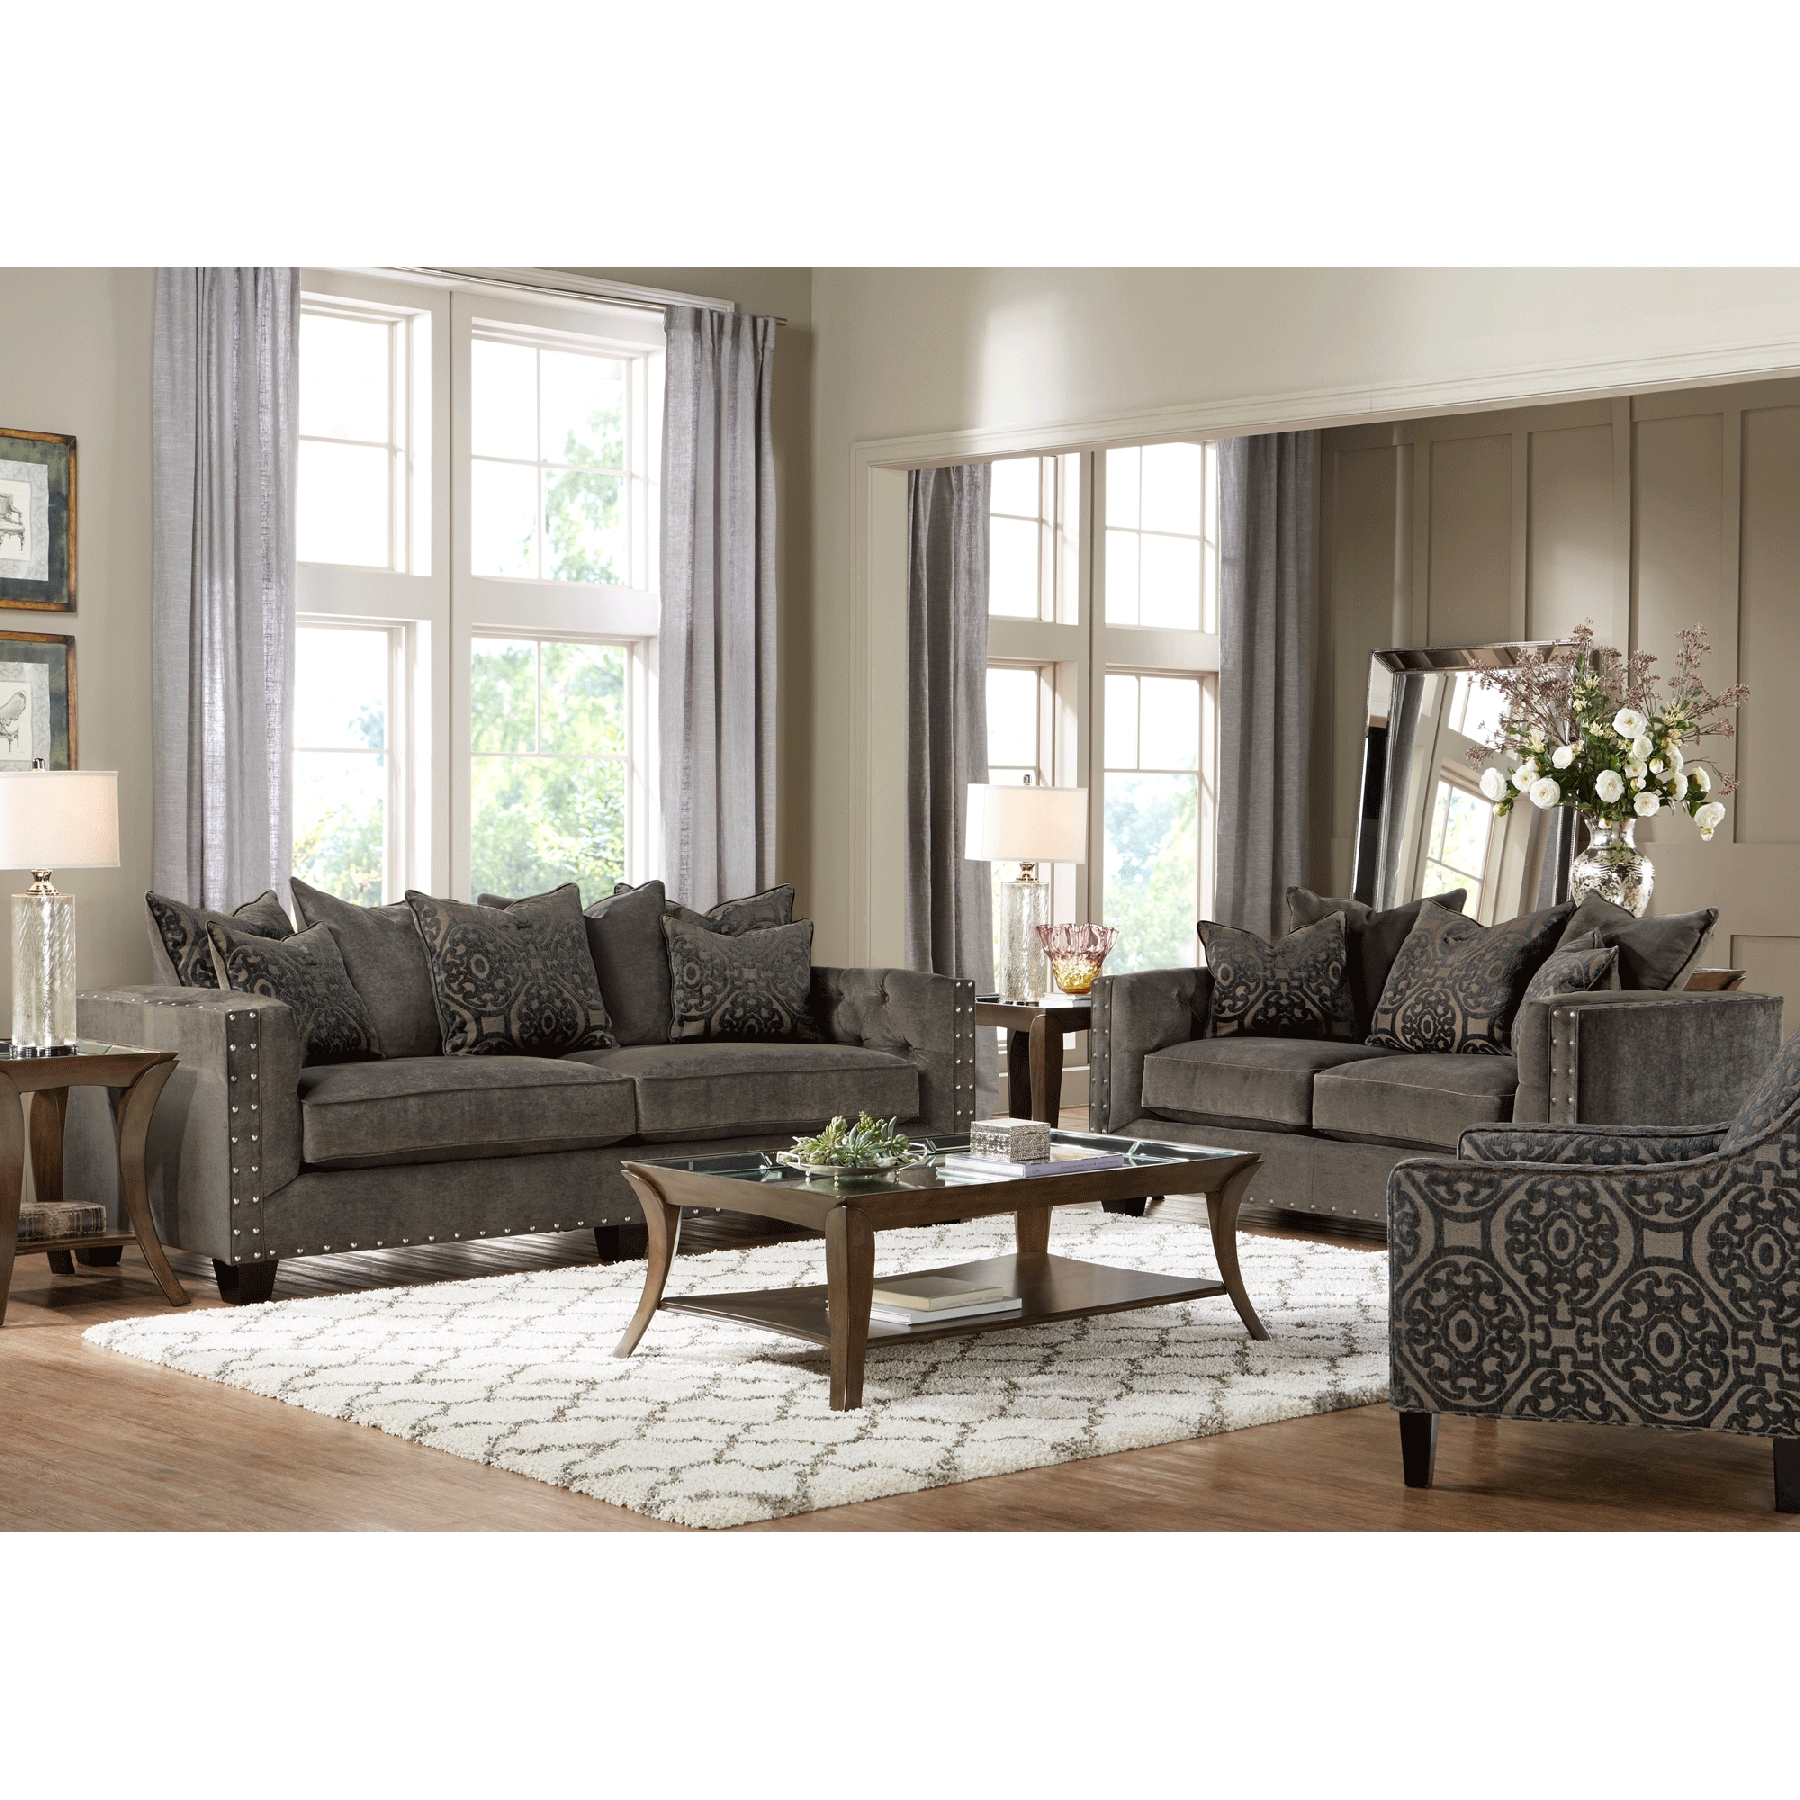 cindy crawford home sidney road sofa gray year of clean water rh yearofcleanwater org